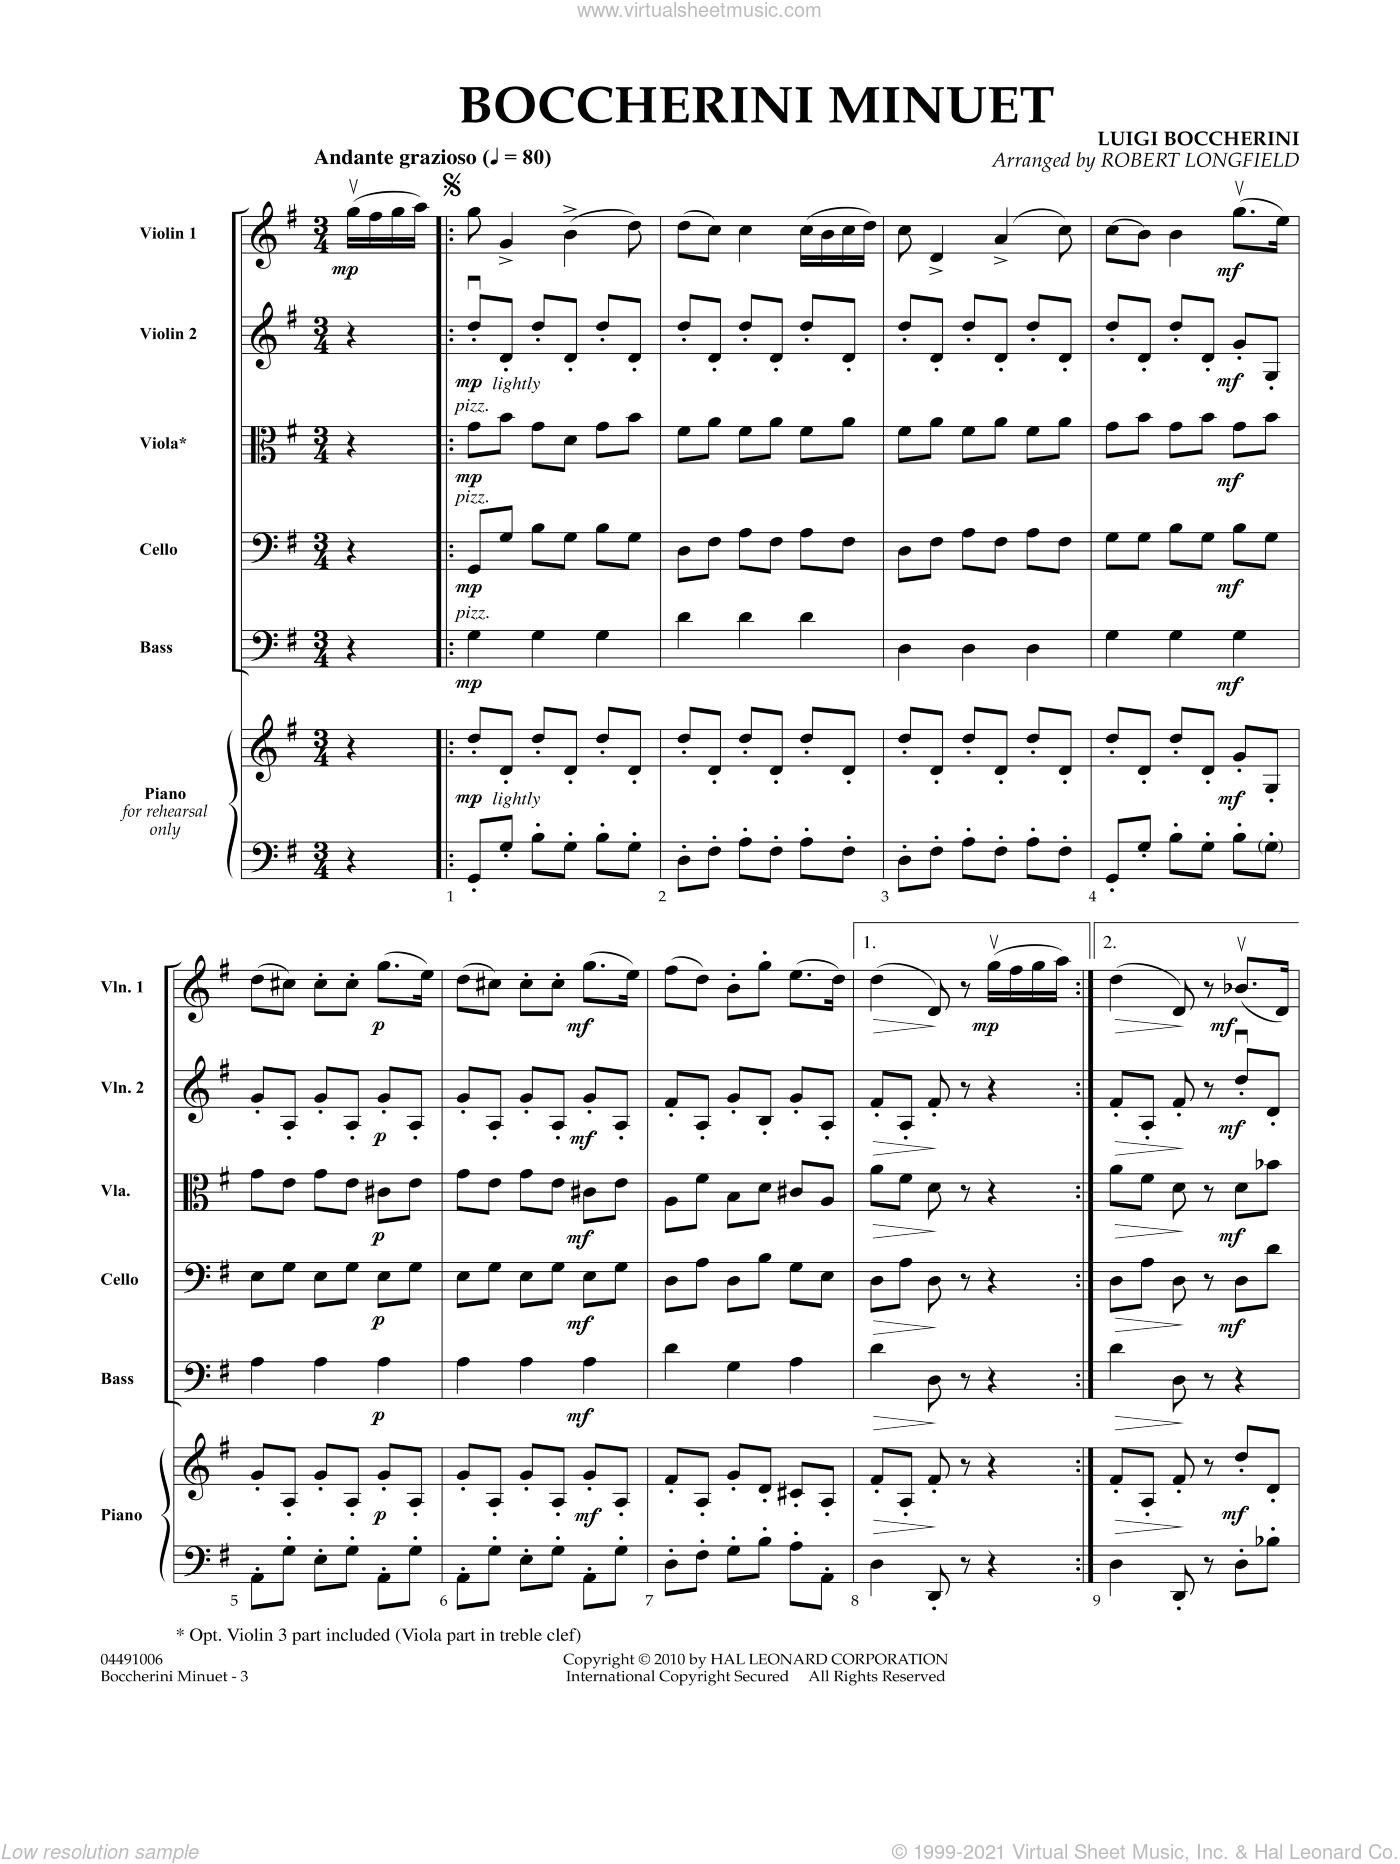 Boccherini Minuet sheet music for orchestra (full score) by Luigi Boccherini